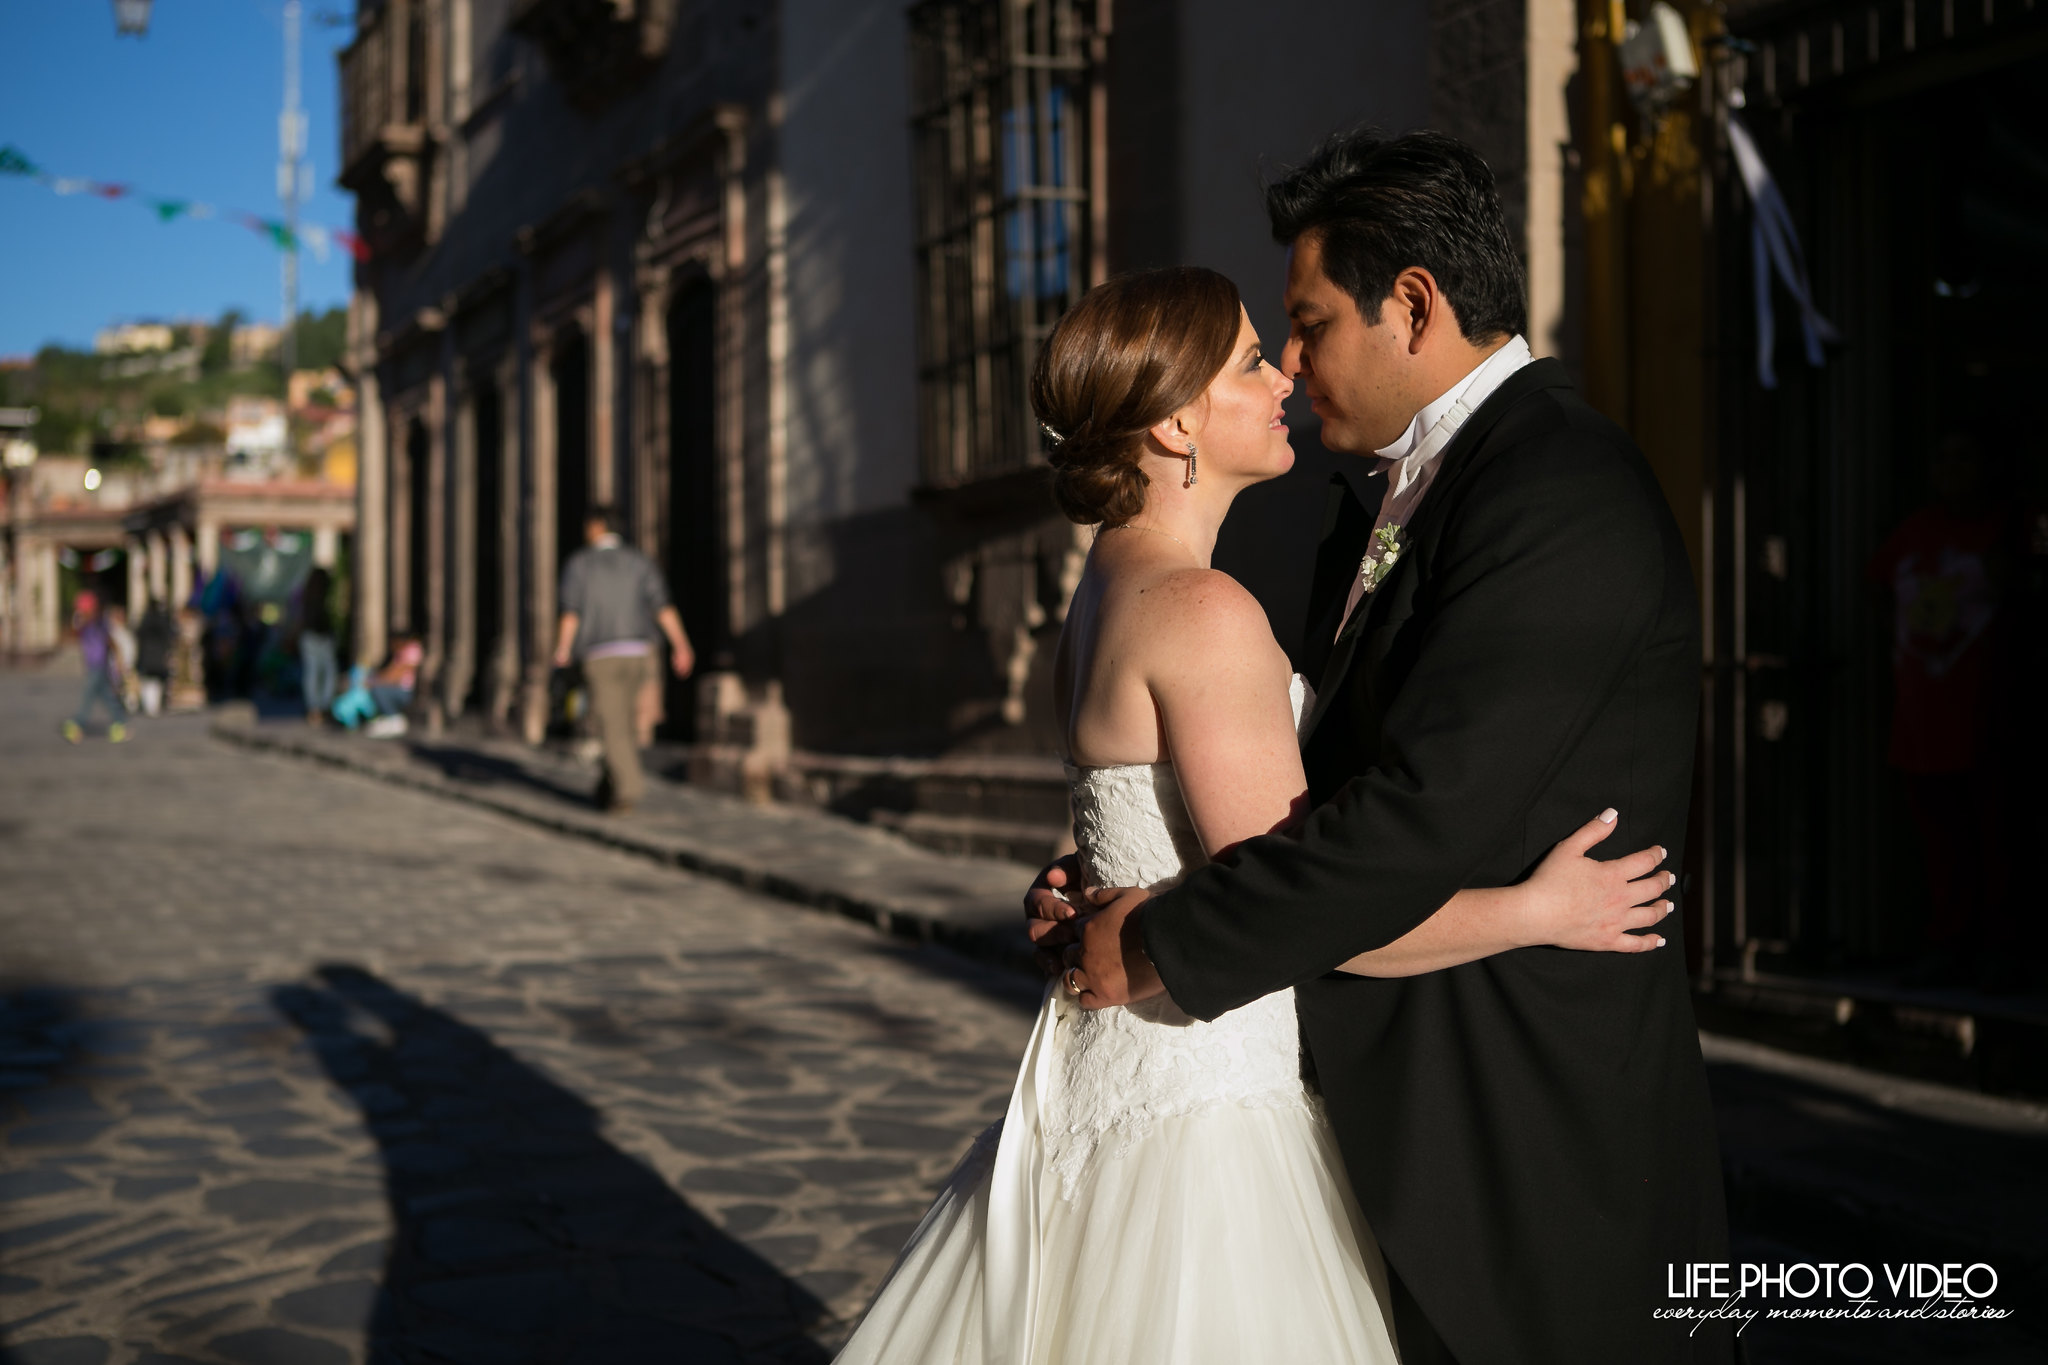 140908_MariaInes_Guillermo_046